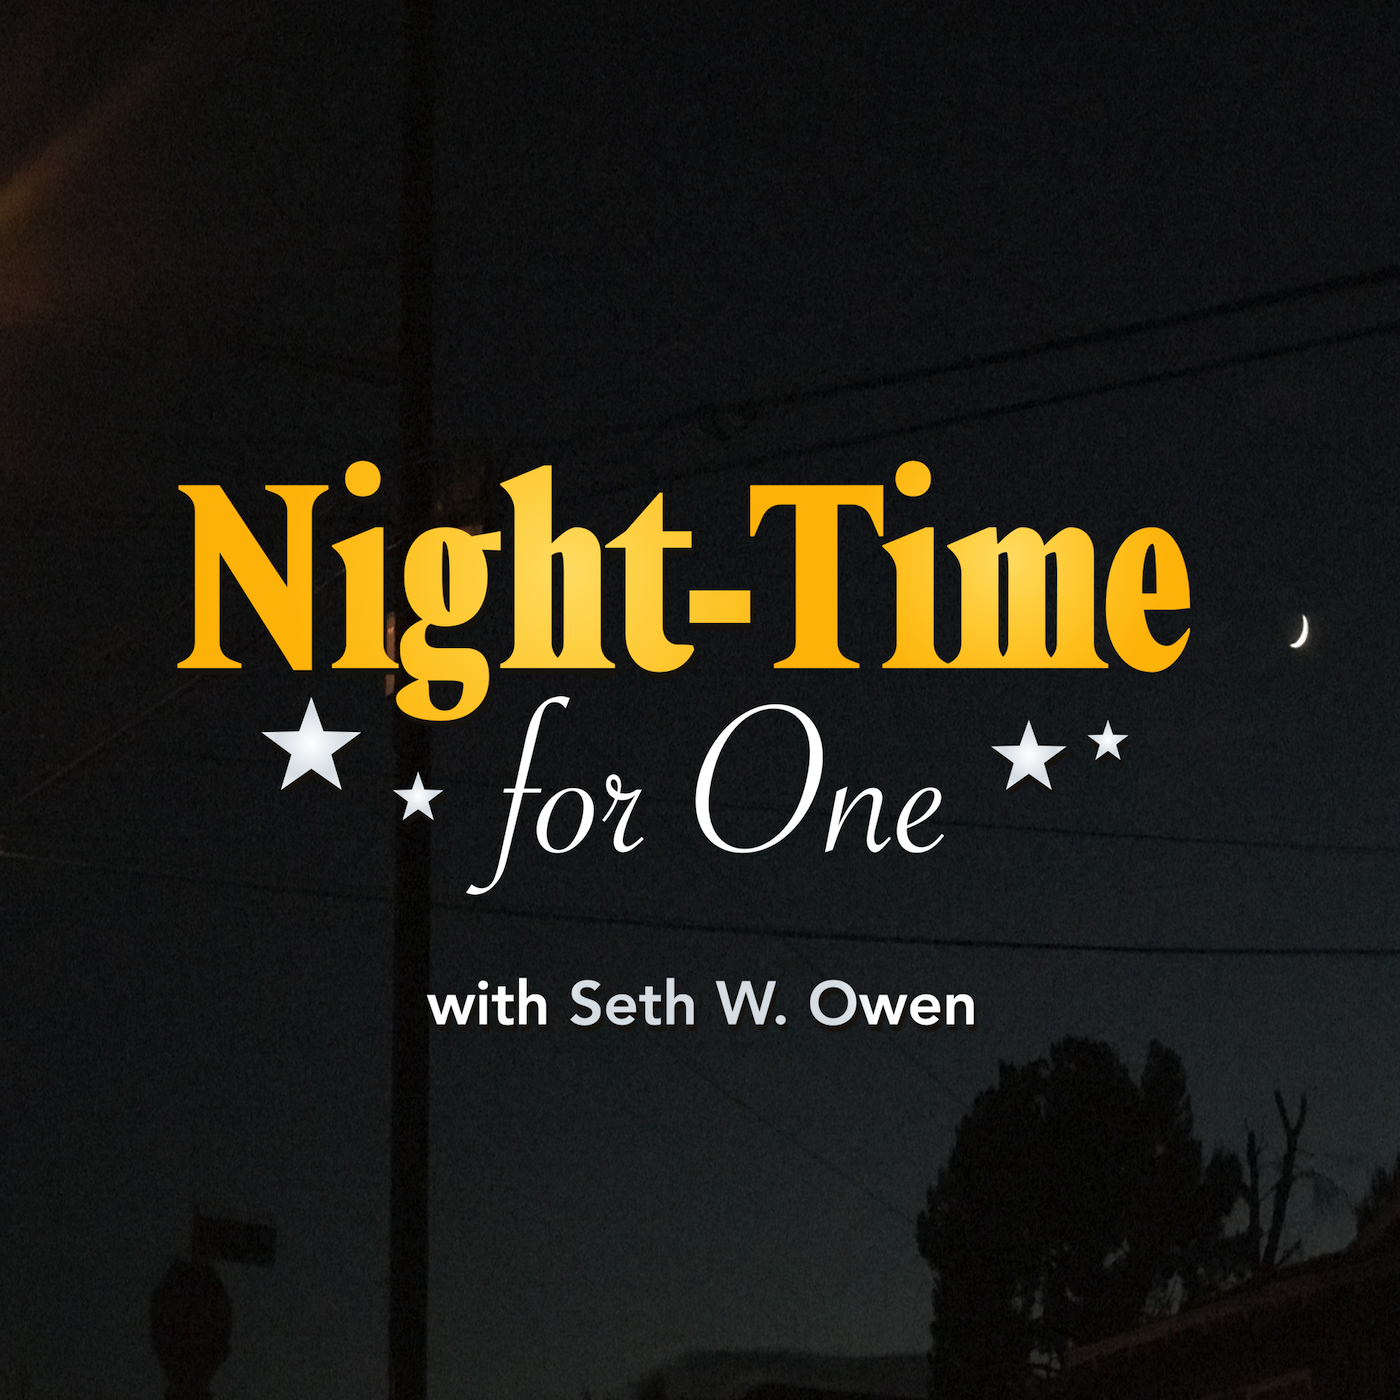 Night-time for One show image